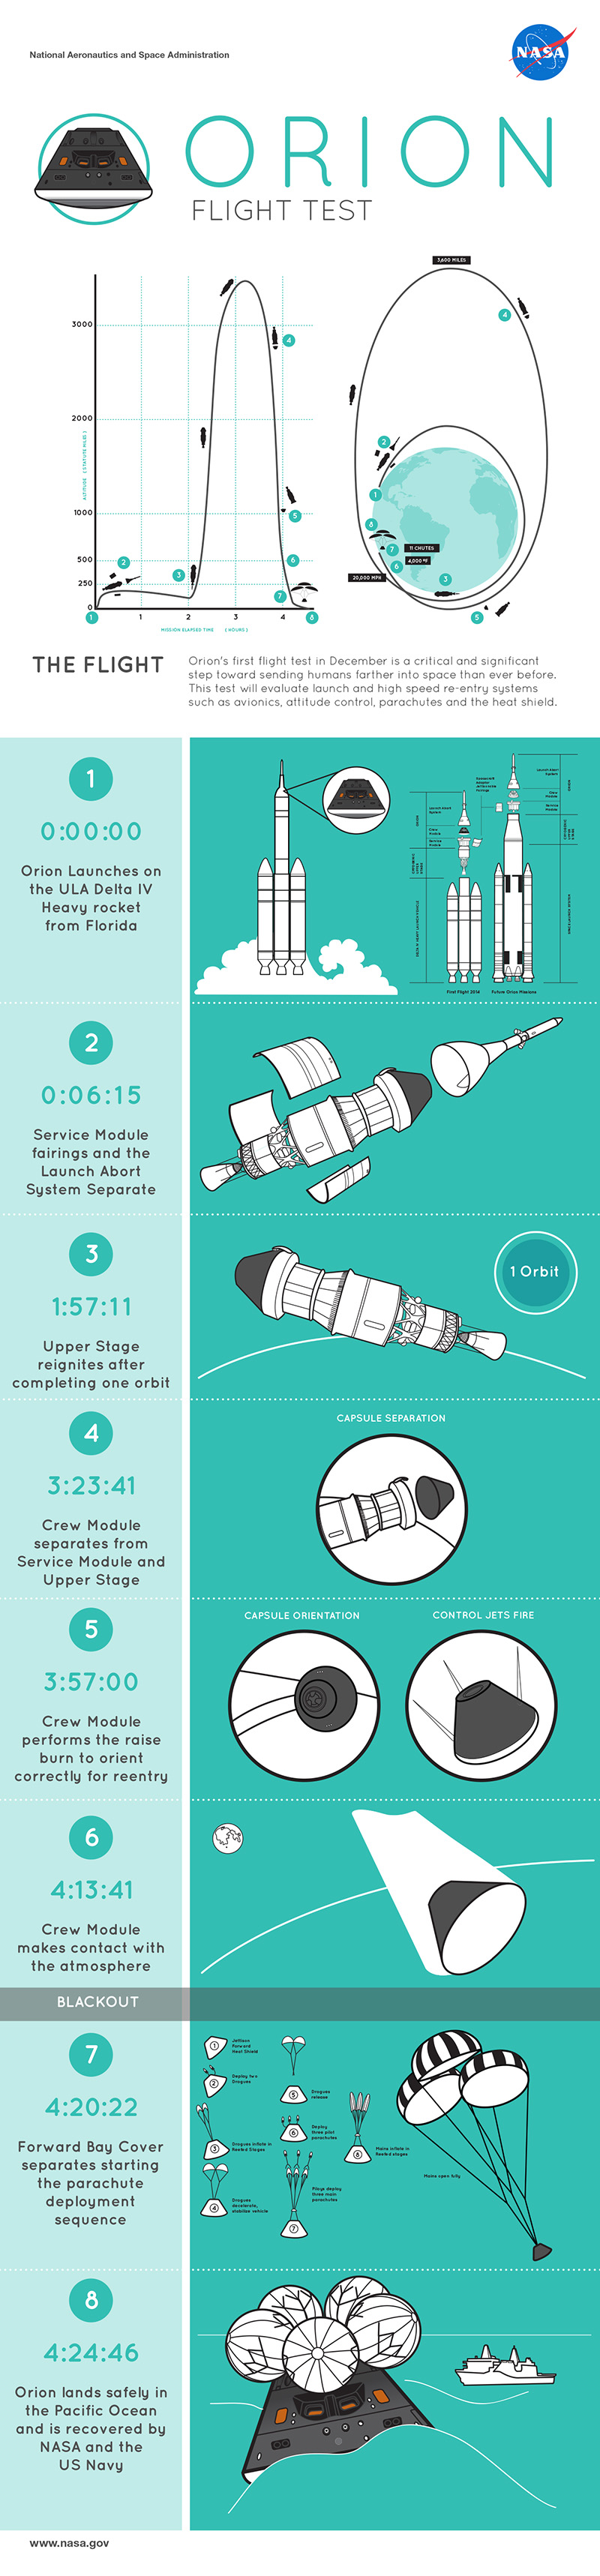 Orion Test - 8 Things to Look For